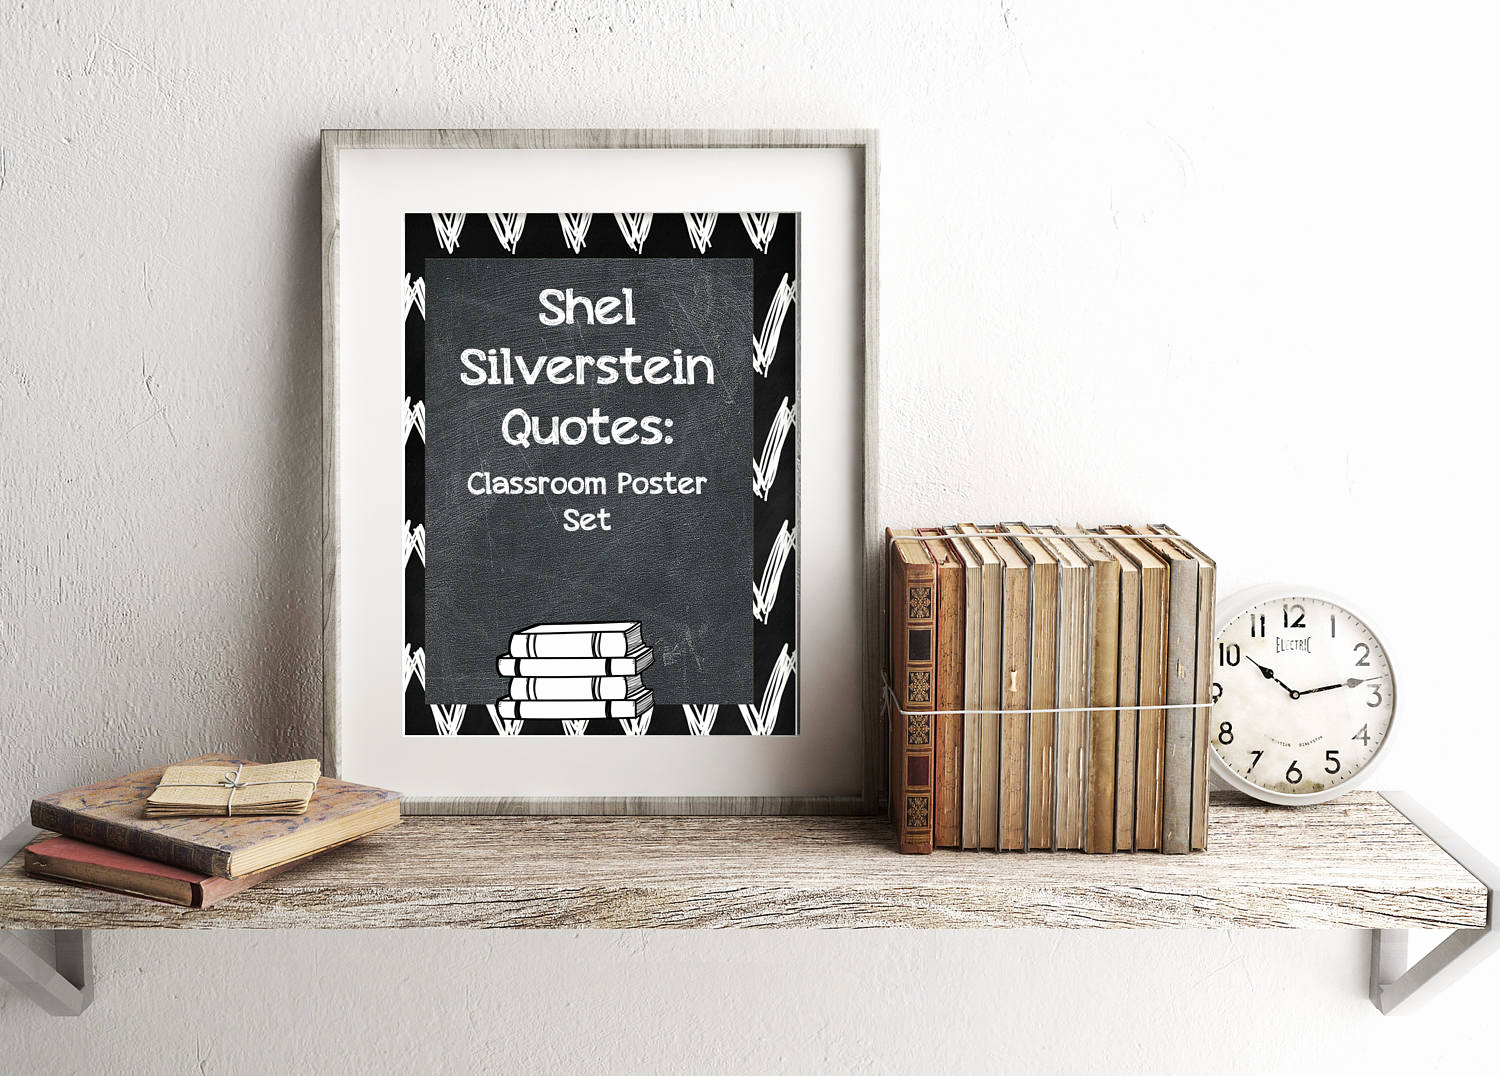 Invitation Shel Silverstein Poster Luxury Shel Silverstein Quotes Classroom Poster Set Digital Prints